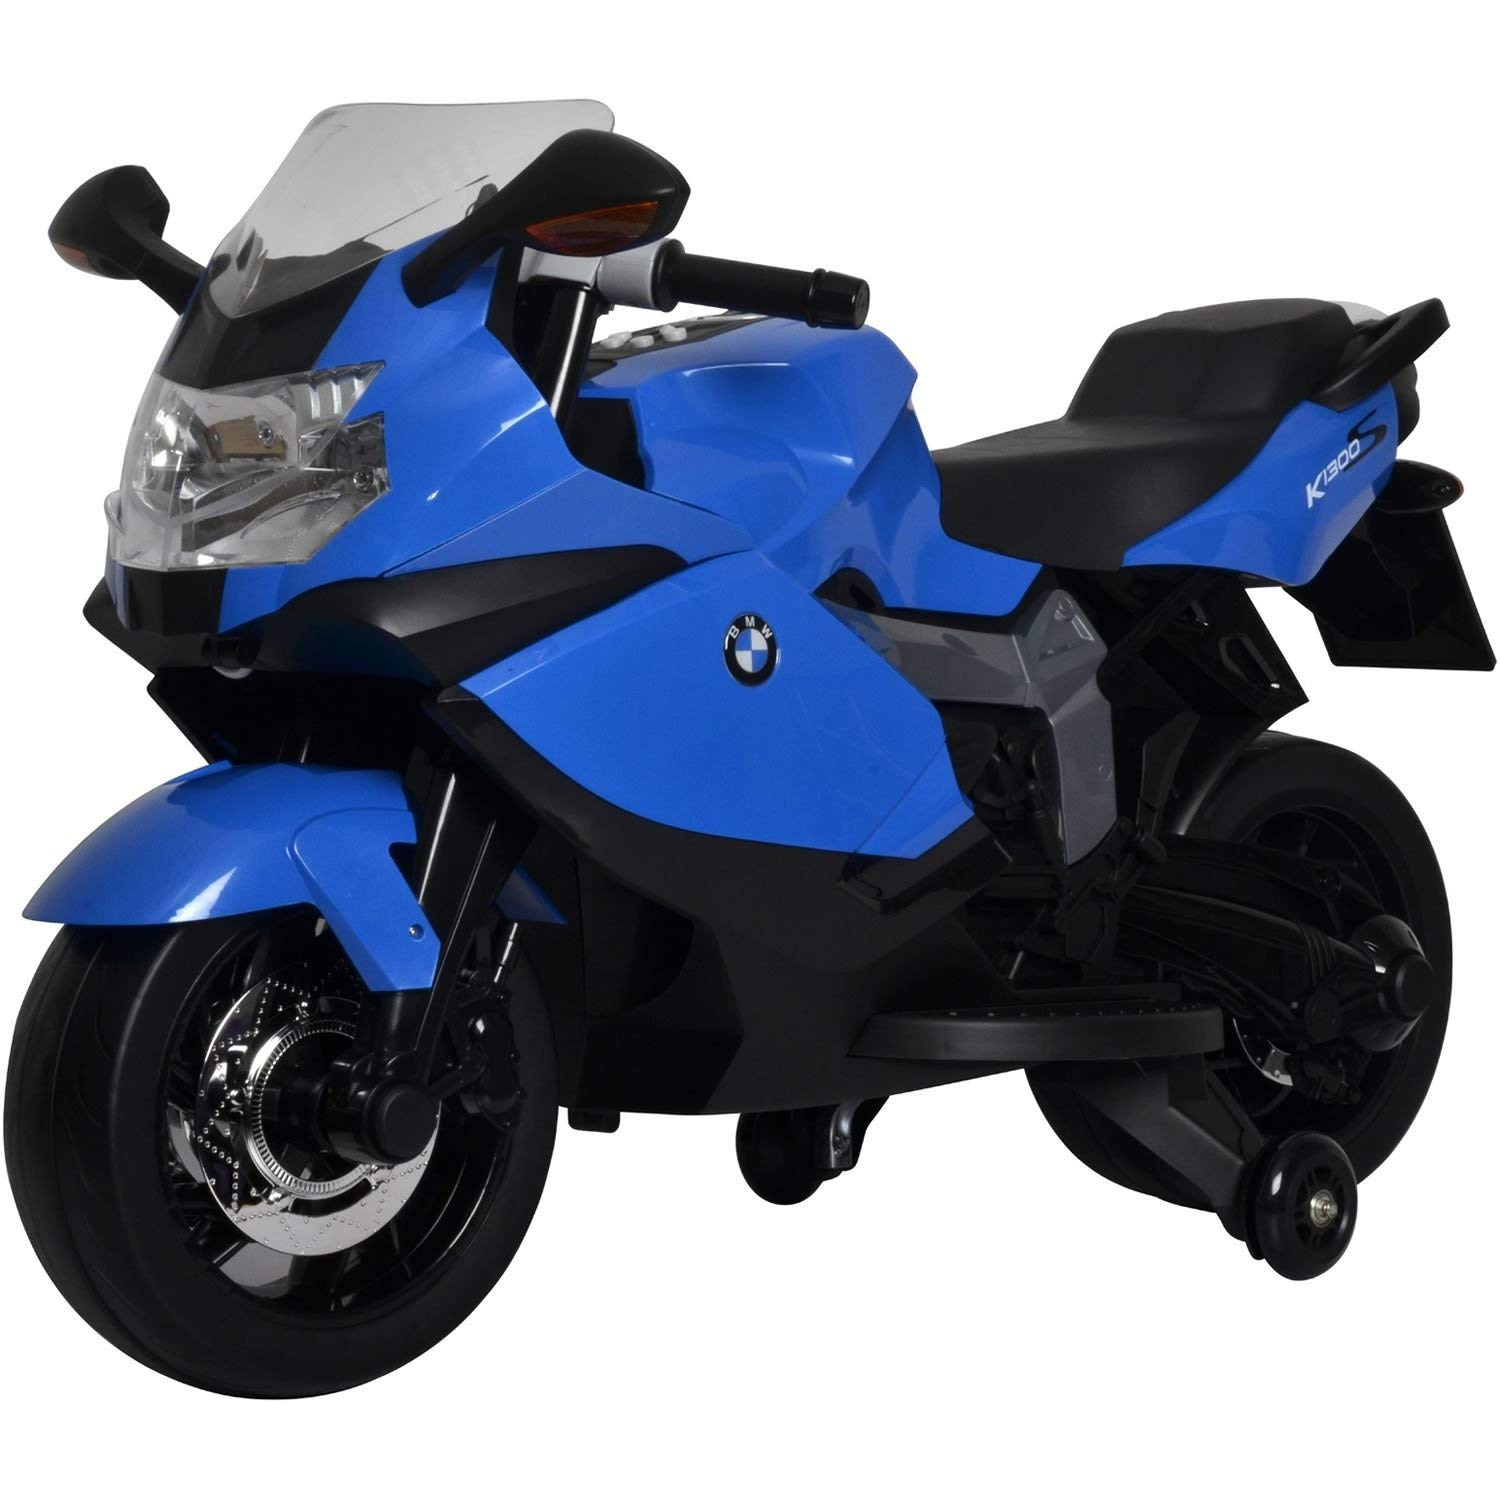 Battery Operated Vehicles for Kids Unique Licensed Bmw Motorcycle 12v Kids Battery Powered Ride On